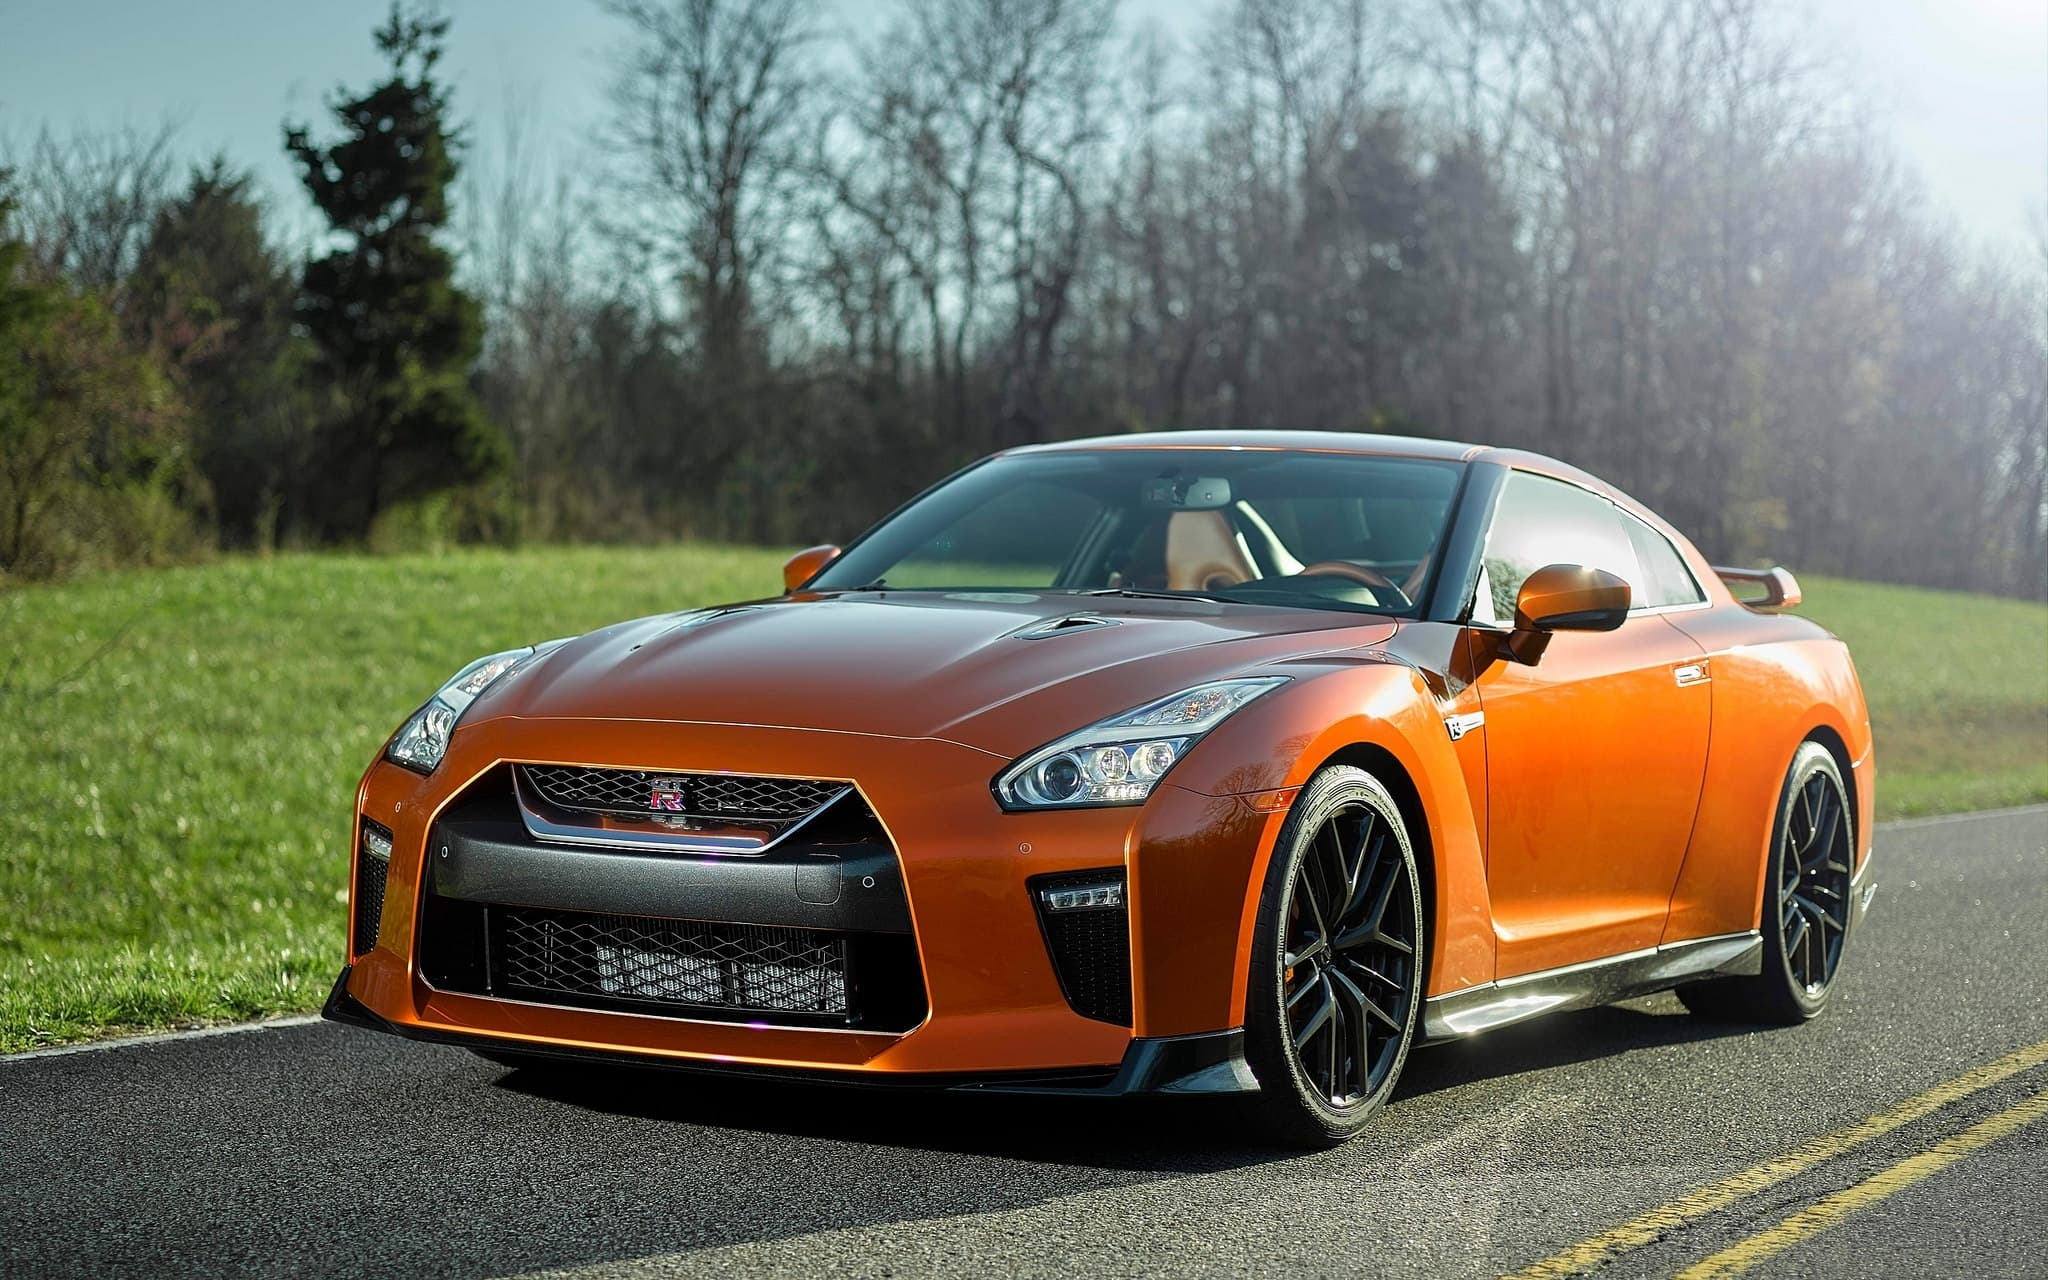 2017 Nissan GT R wallpapers High Quality Resolution Download 2048x1280